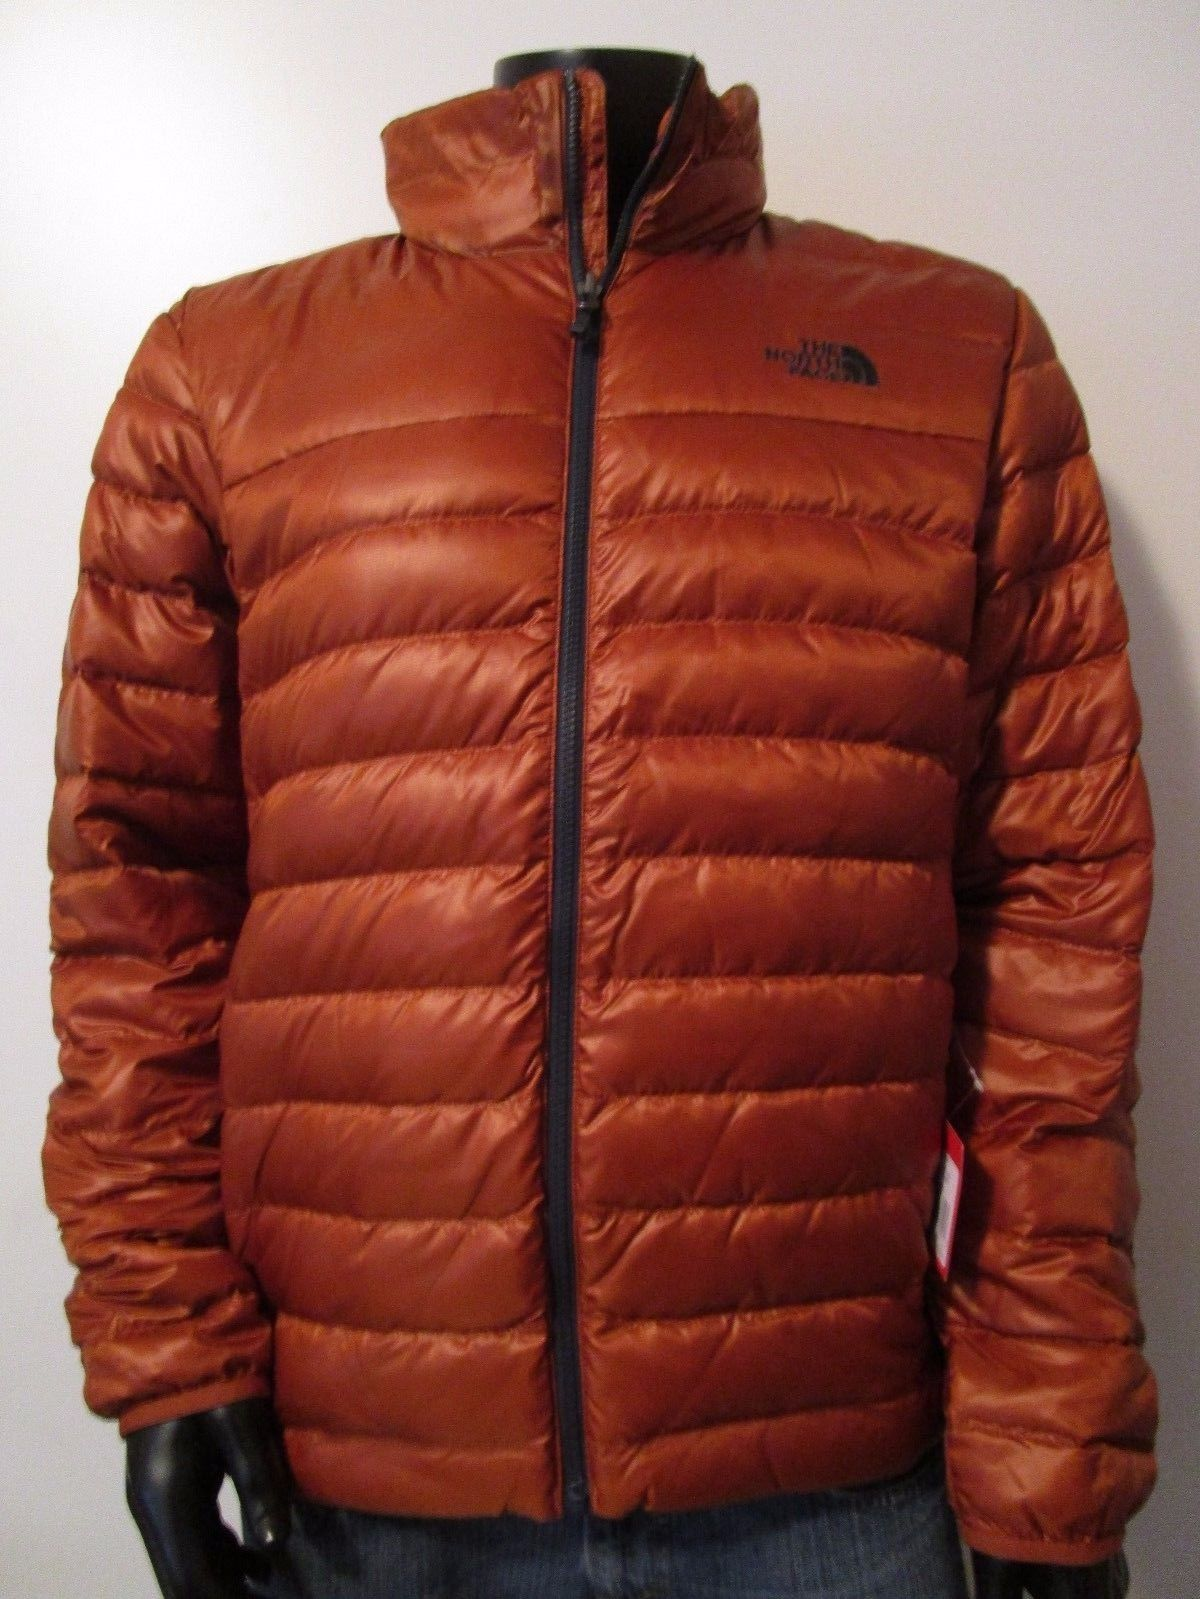 baf6feaf258 The North Face Men s Flare 550 Down Jacket in Gingerbread Brown Small  160